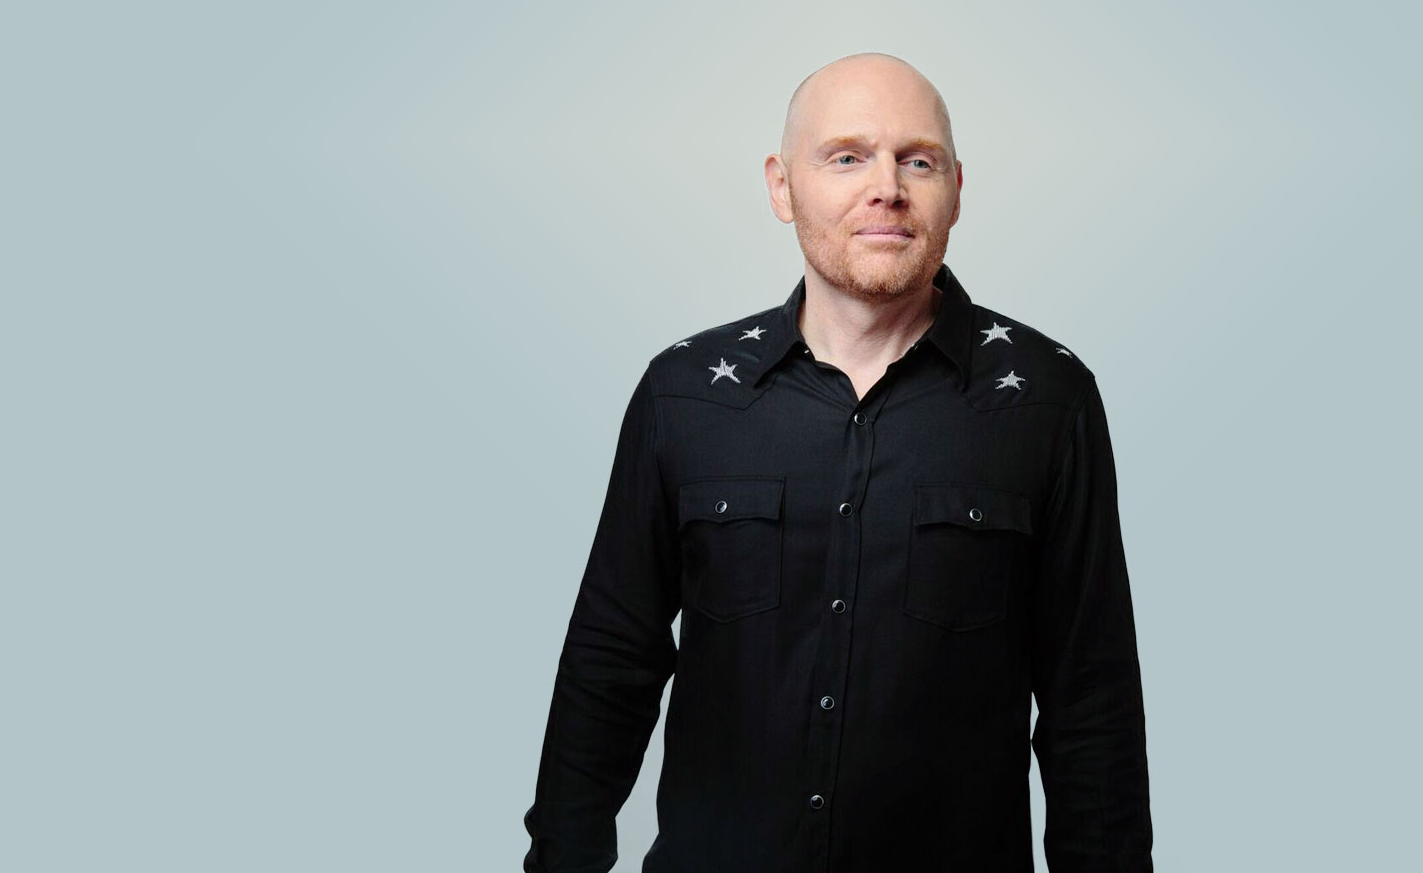 Comedian Bill Burr Taking Over Majestic Theatre to Offend ...